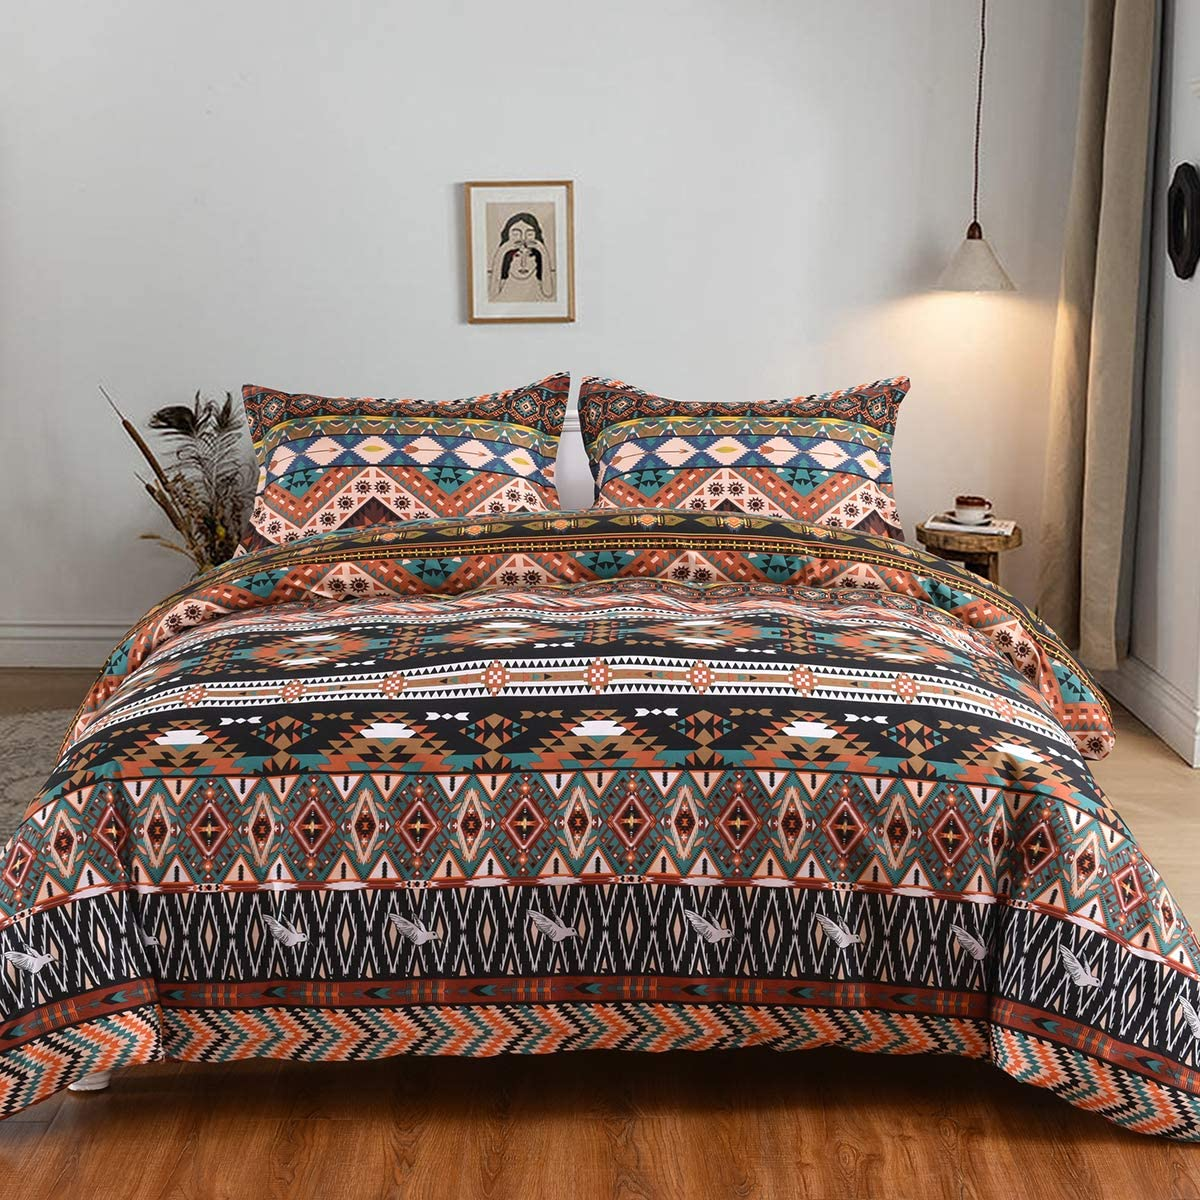 Mefinia Boho Bedding Duvet Challenge the lowest price of Japan Cover Popular Set X Zipper Closure 104 with